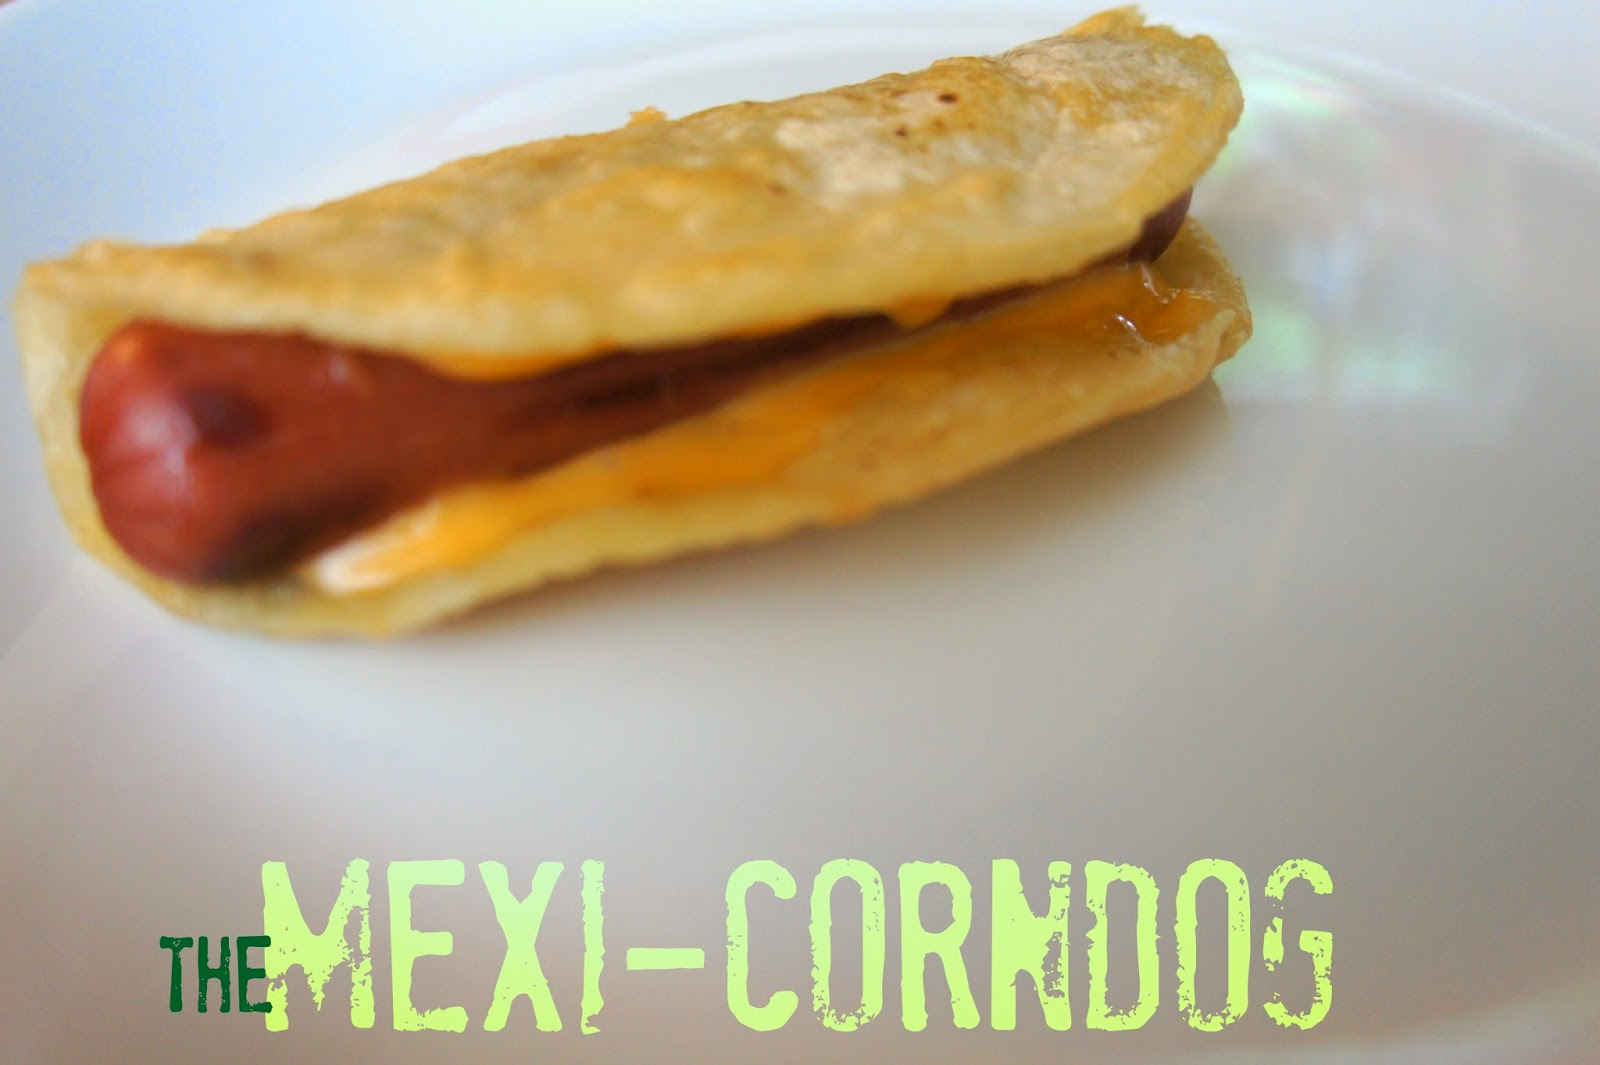 Mexi-corndog-kraft-cheese-quick-meals-comidas-faciles